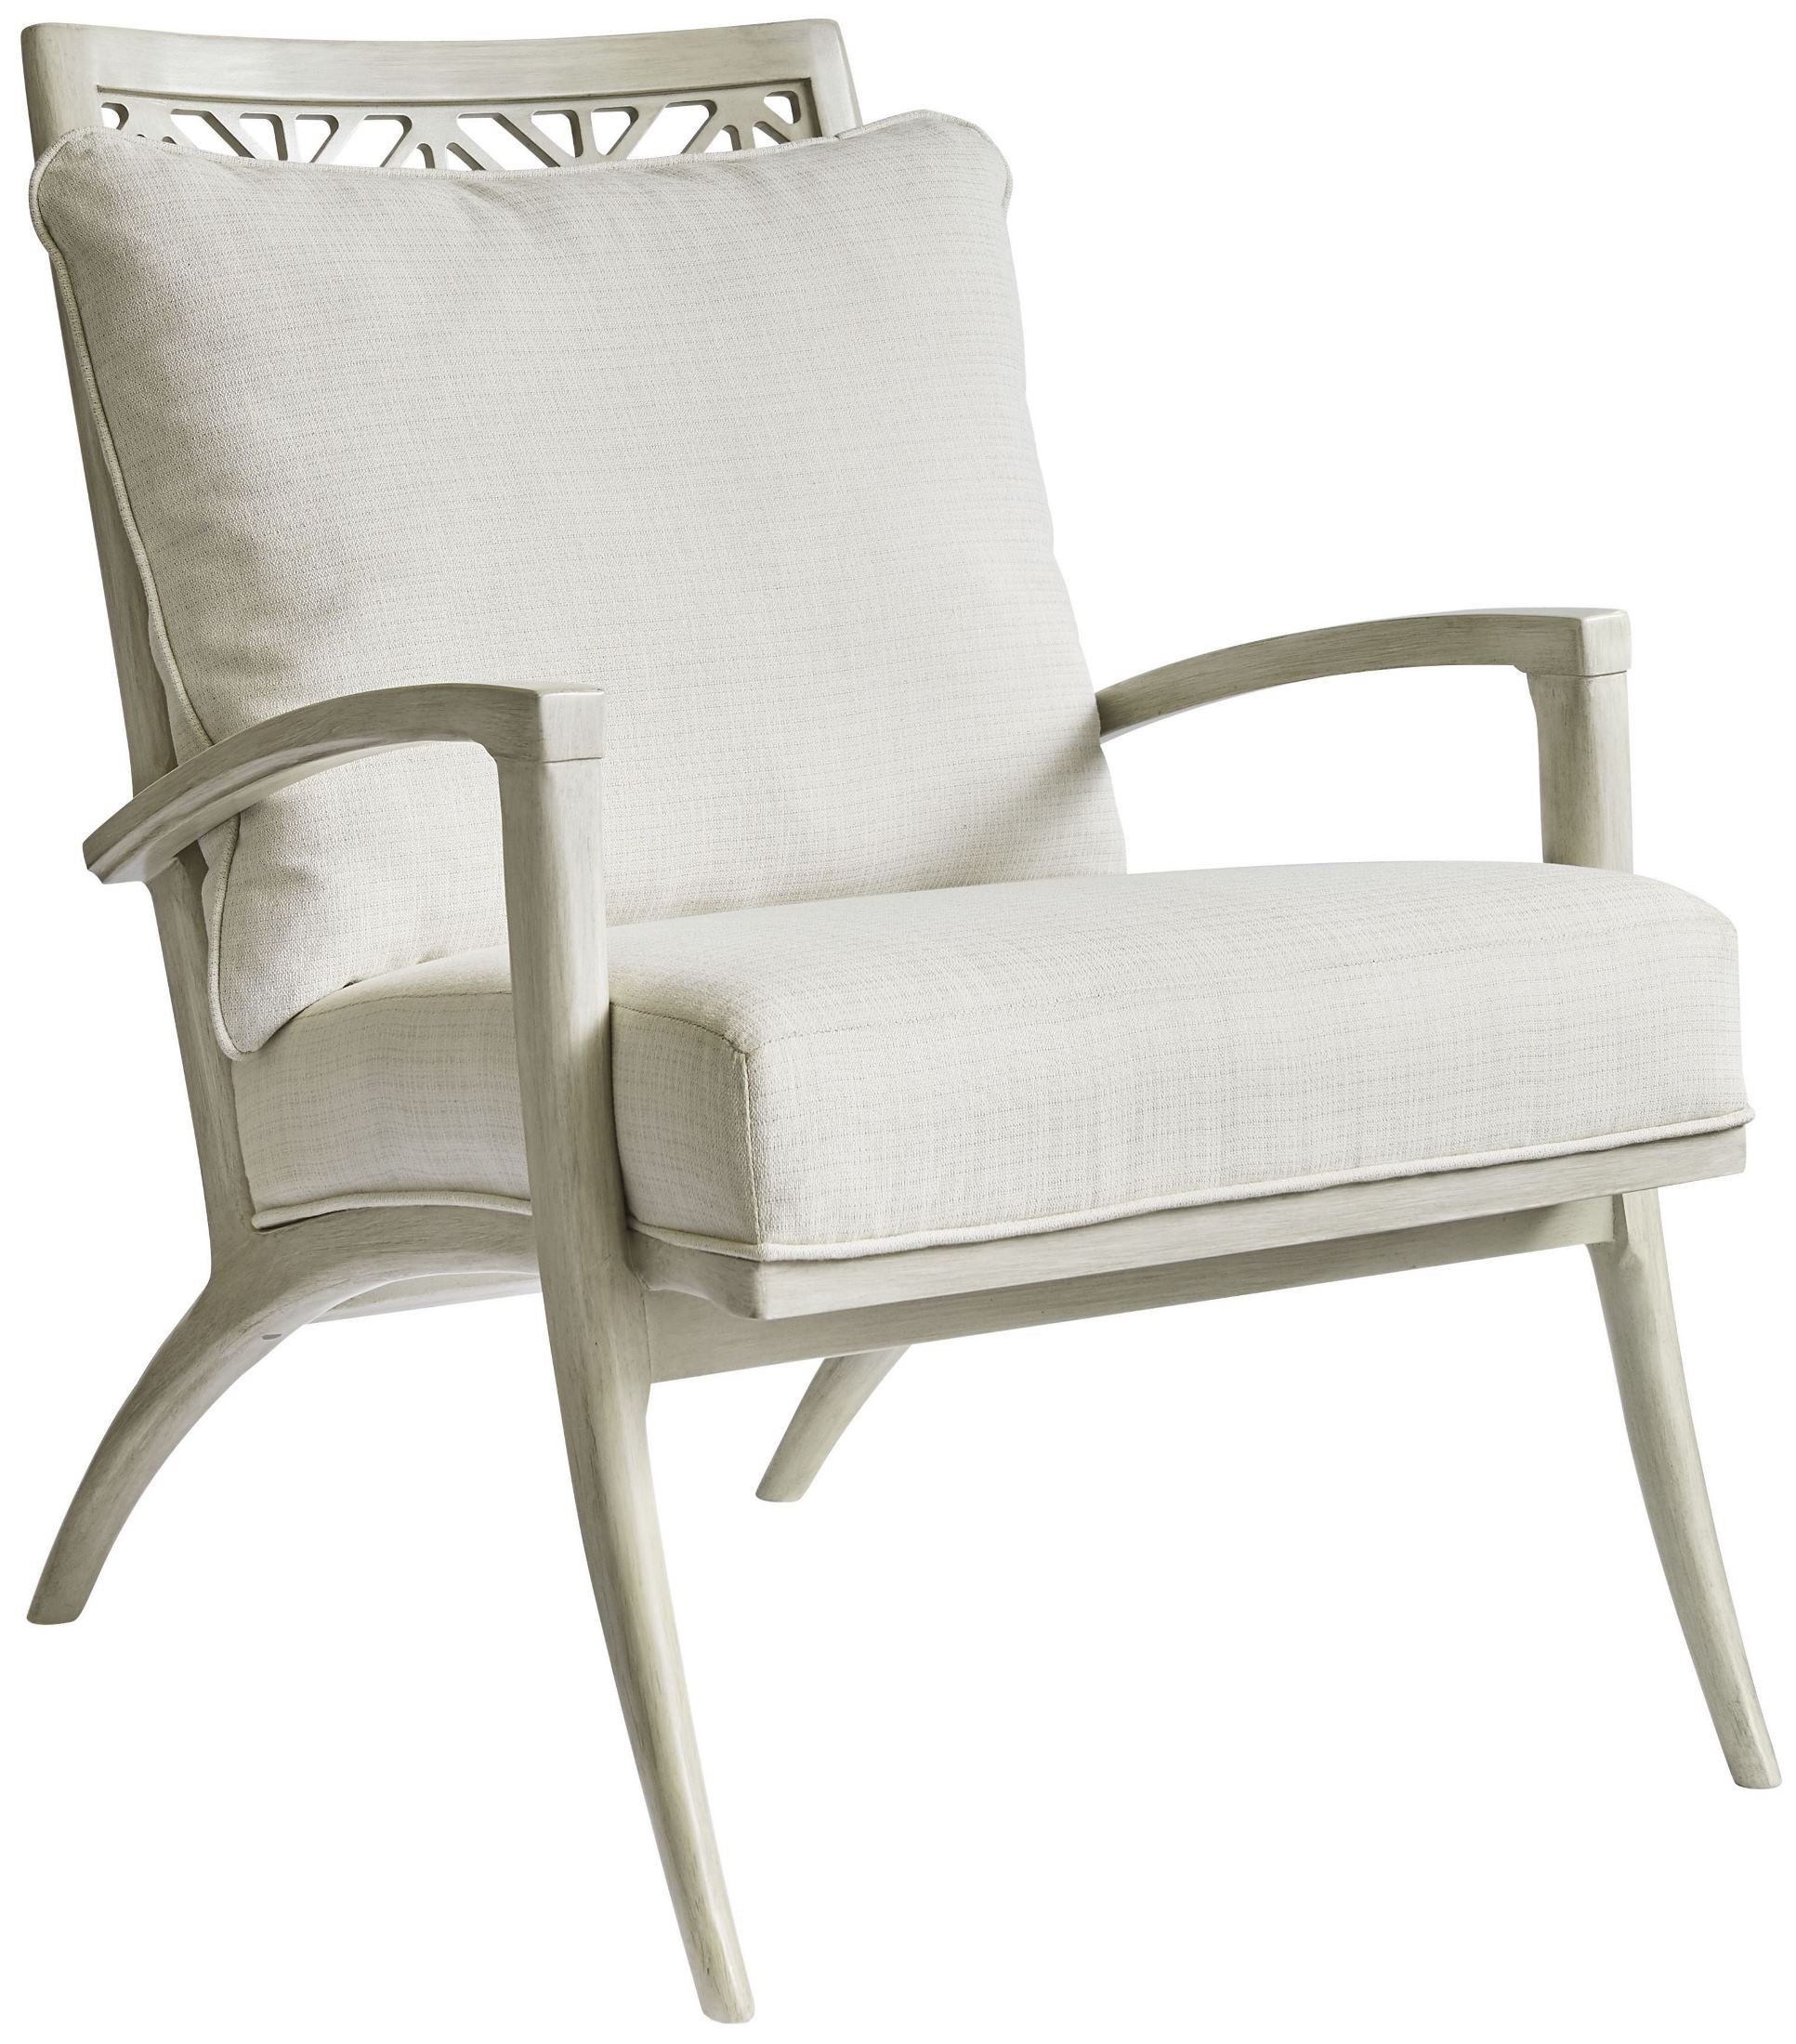 Coastal living oasis oyster catalina accent chair 527 55 for Coastal furniture